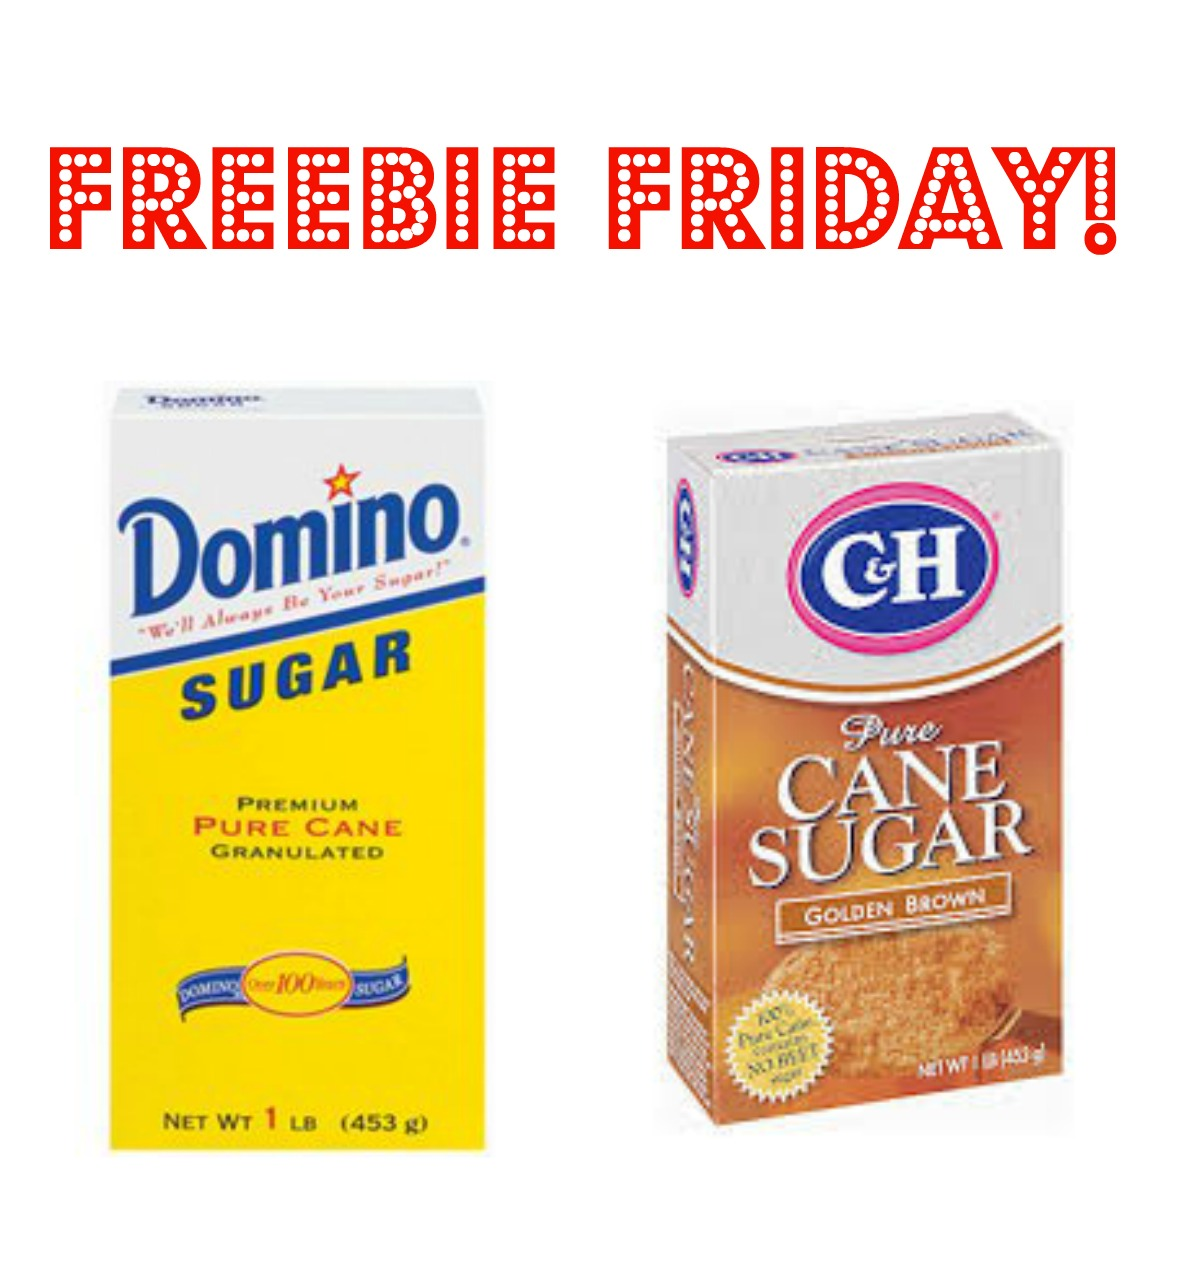 FREE 1lb. box of Domino or C&a...